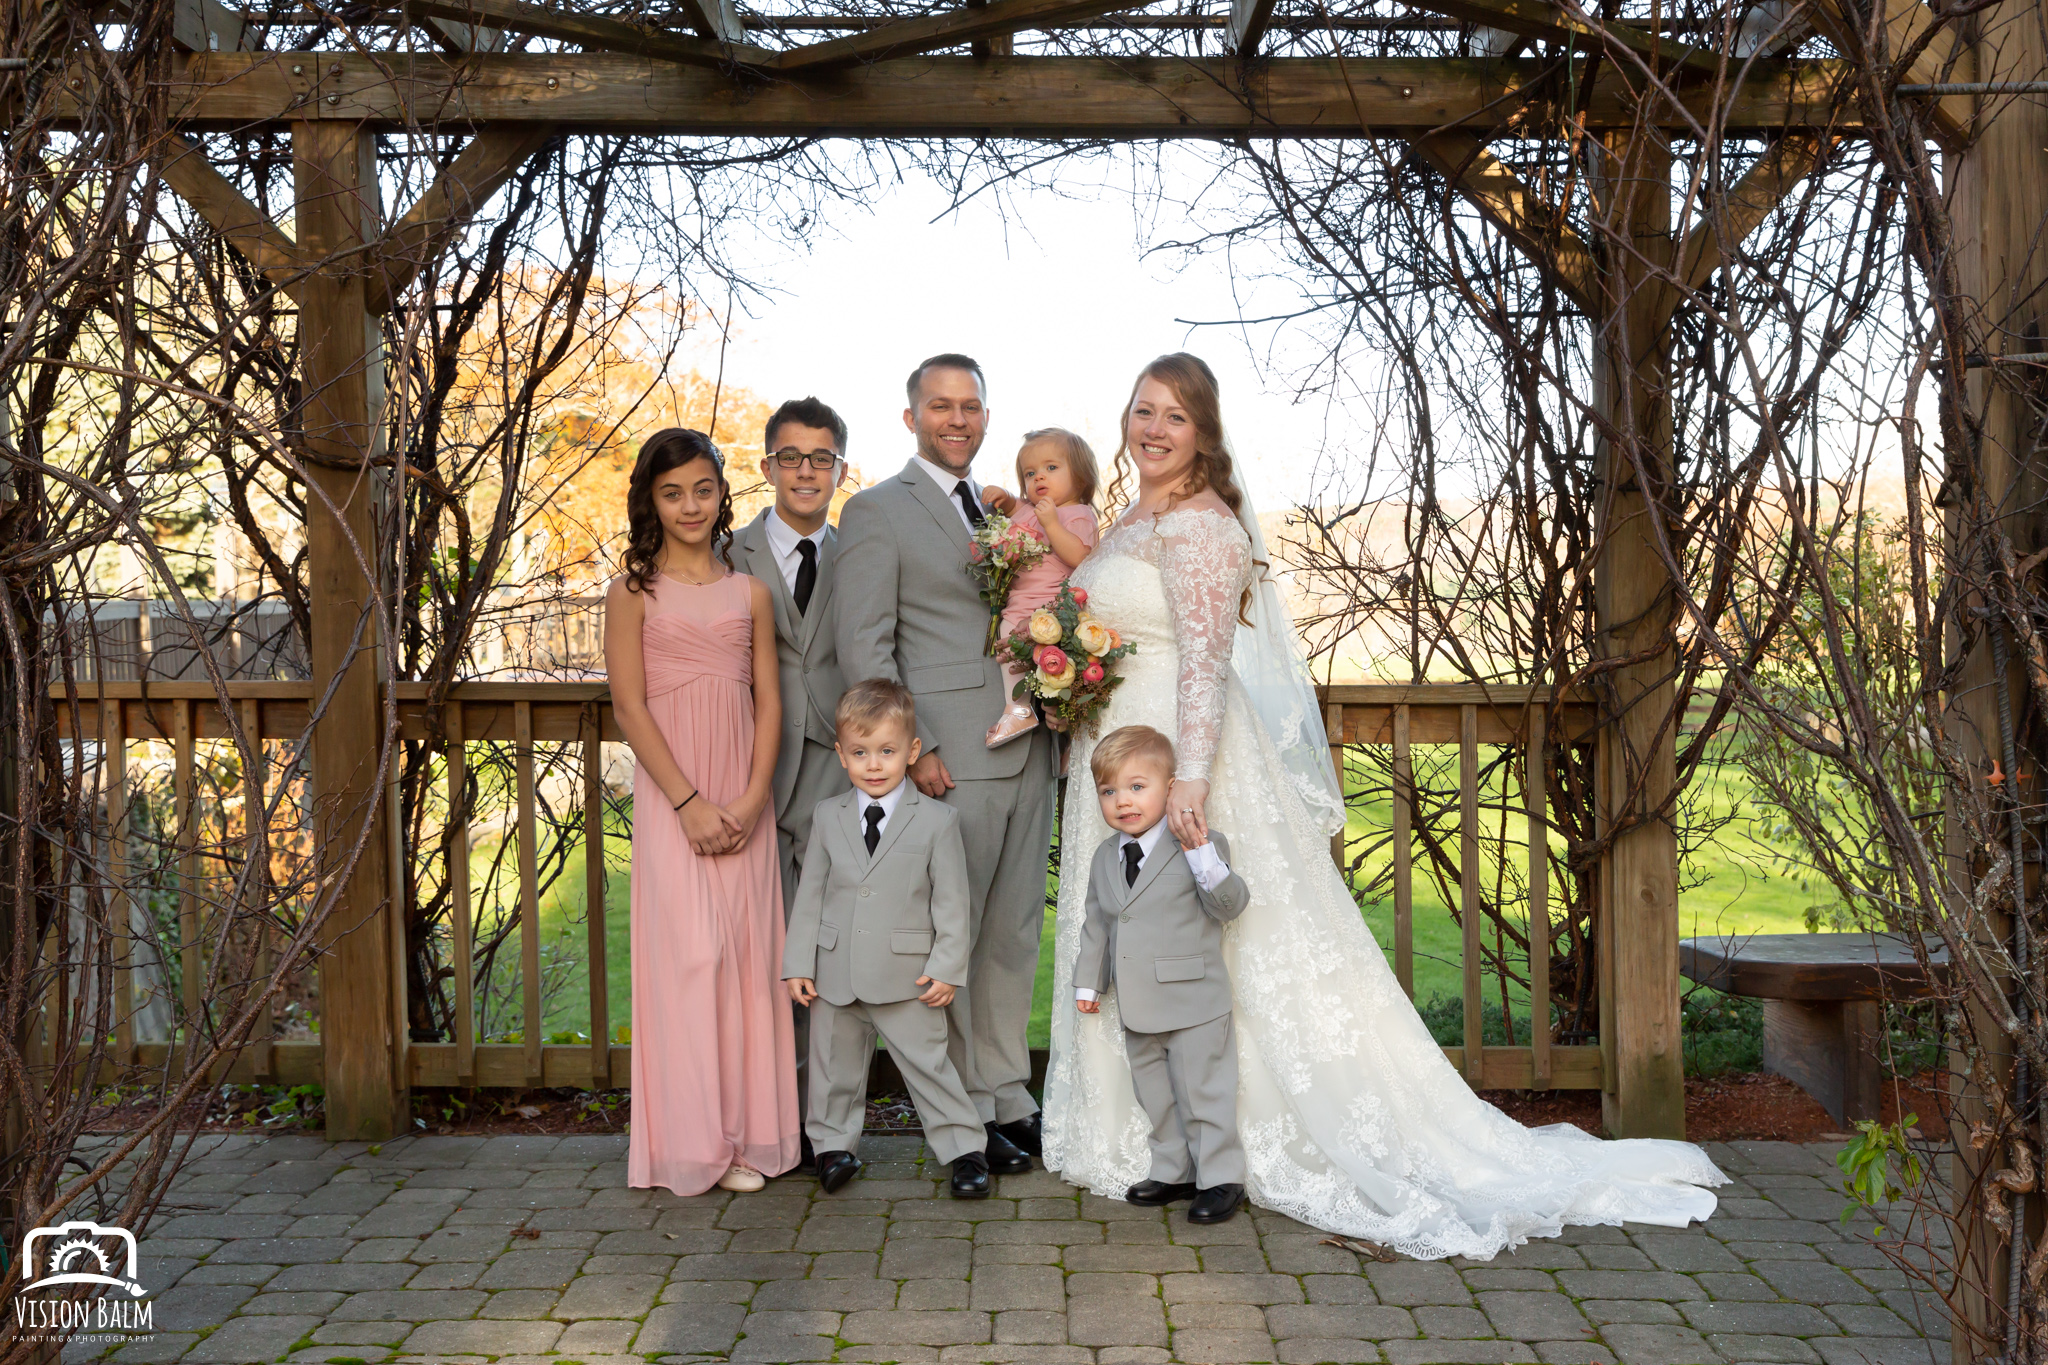 Wedding formal photo of bride and groom's family in Zuka's Hilltop Barn by Vision Balm in Charleston, SC.